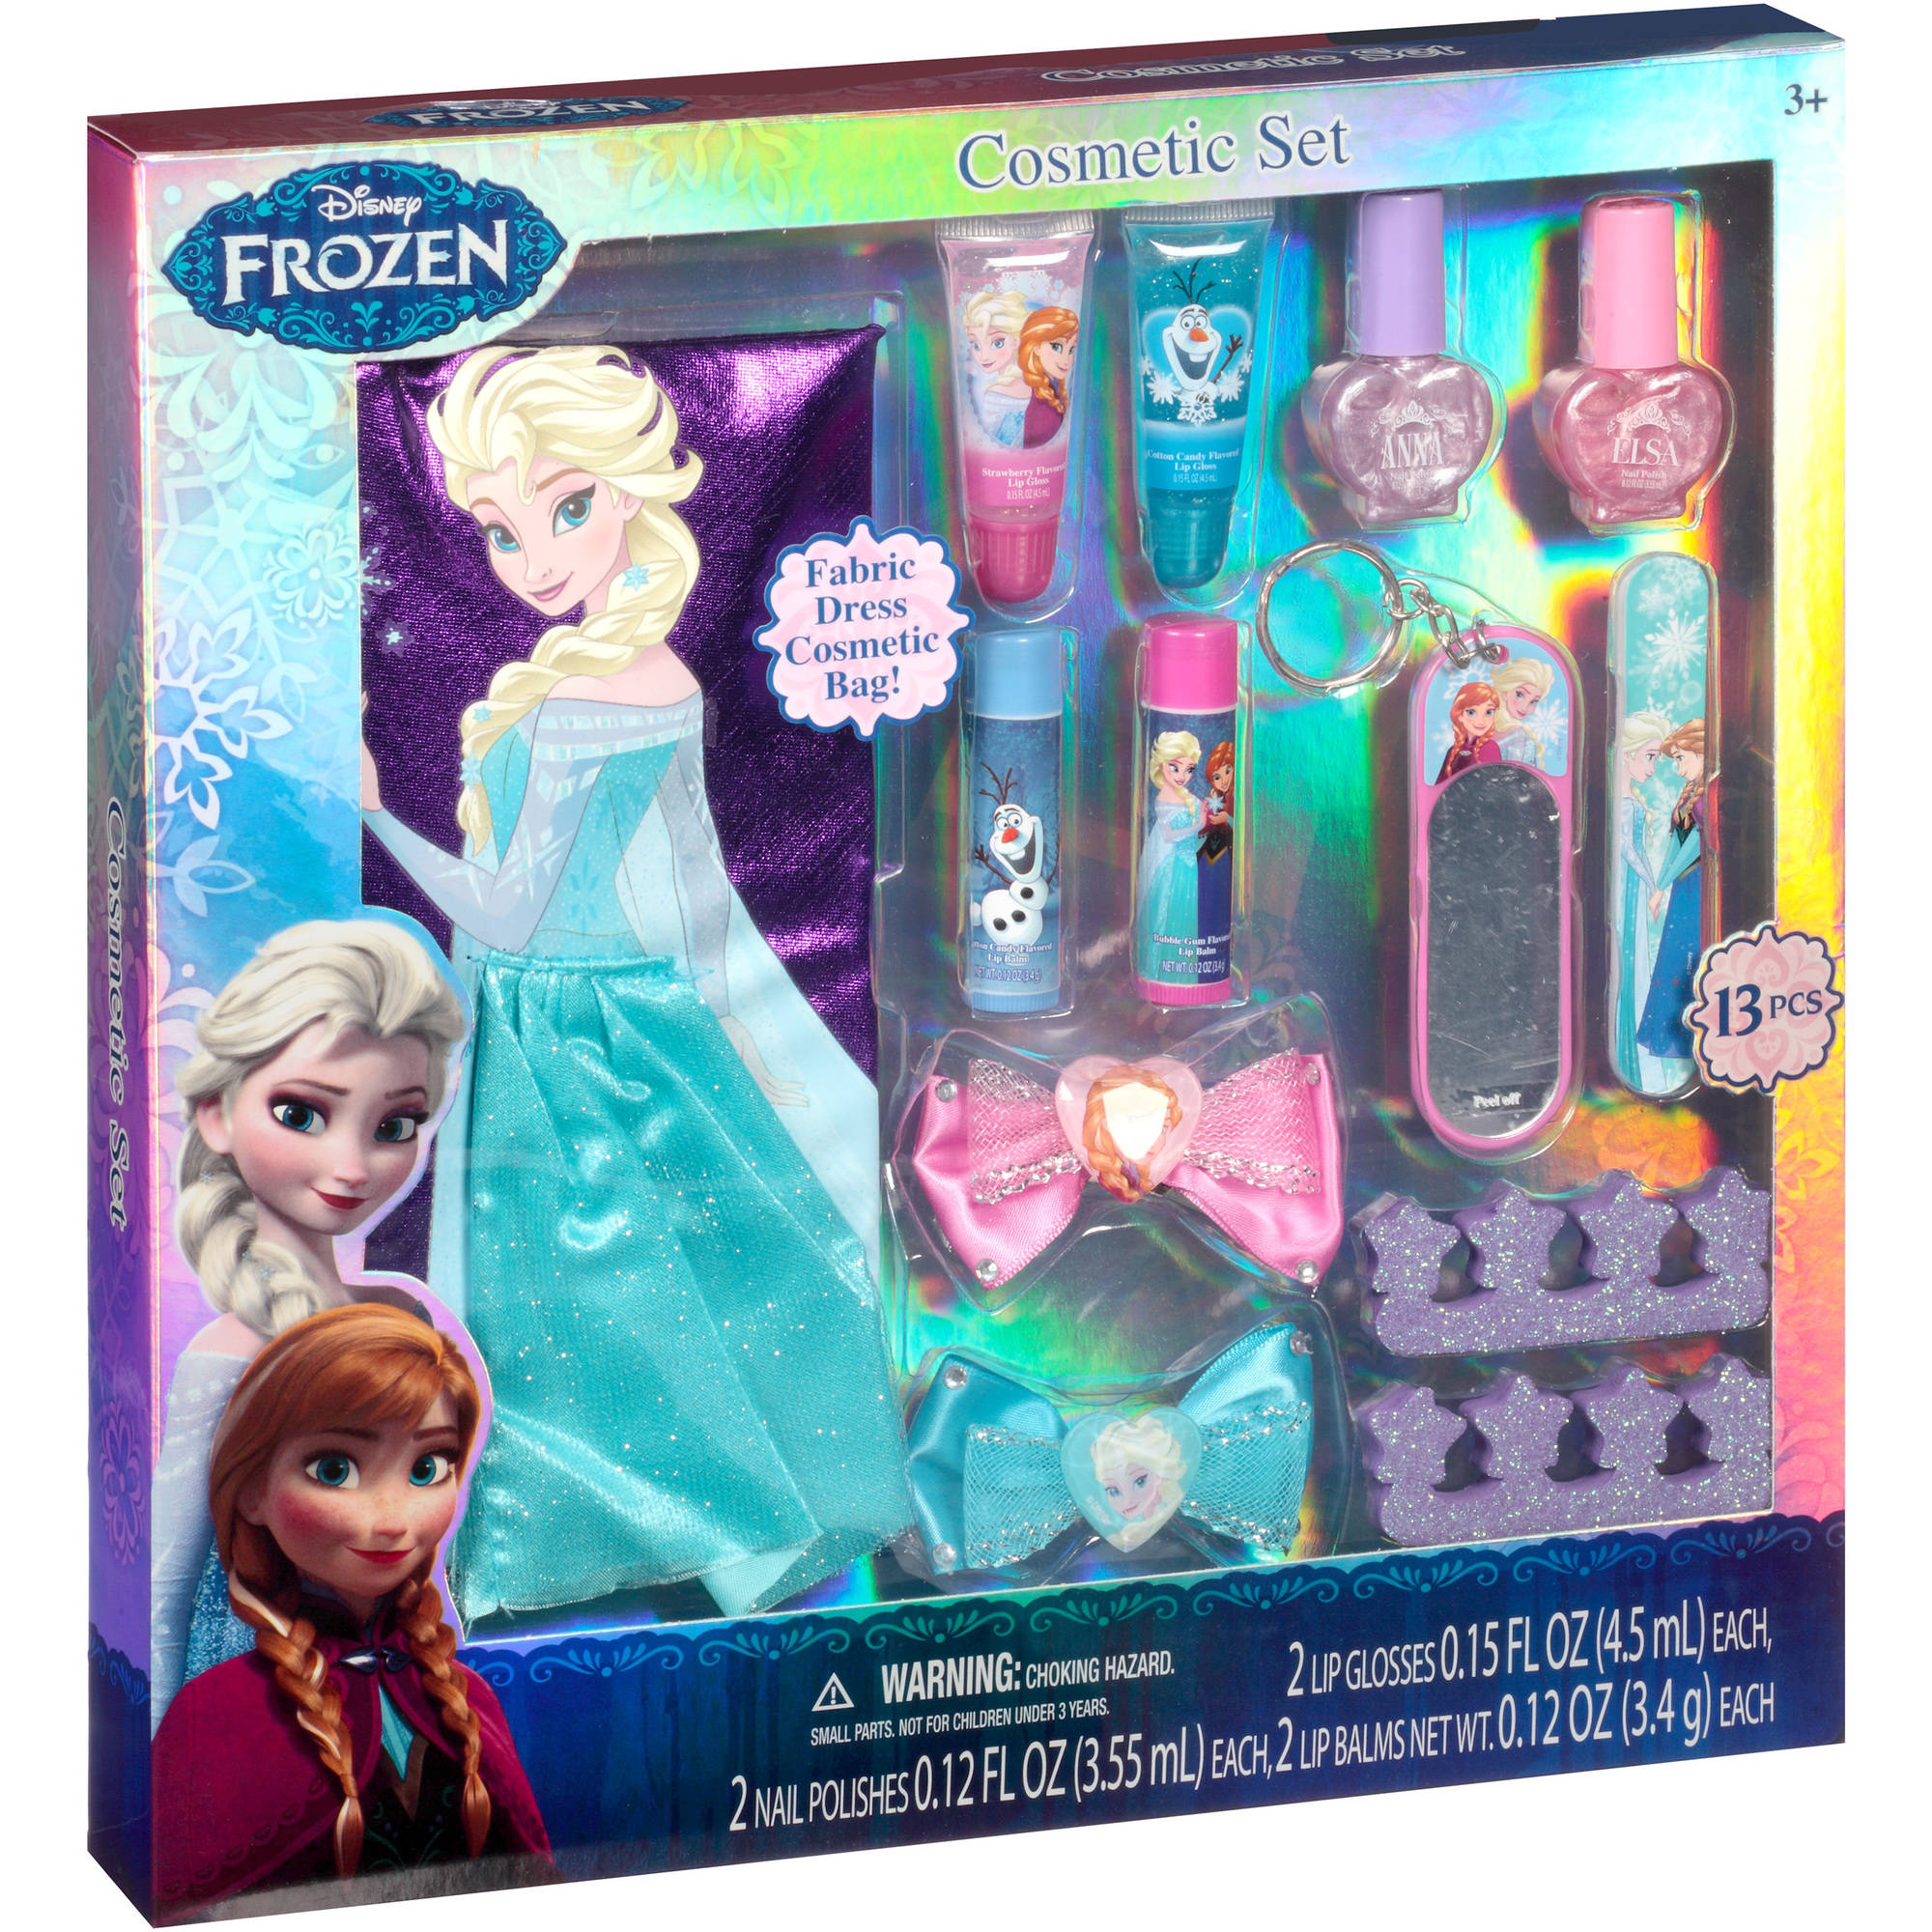 Disney Frozen Cosmetic Set, 13 pc